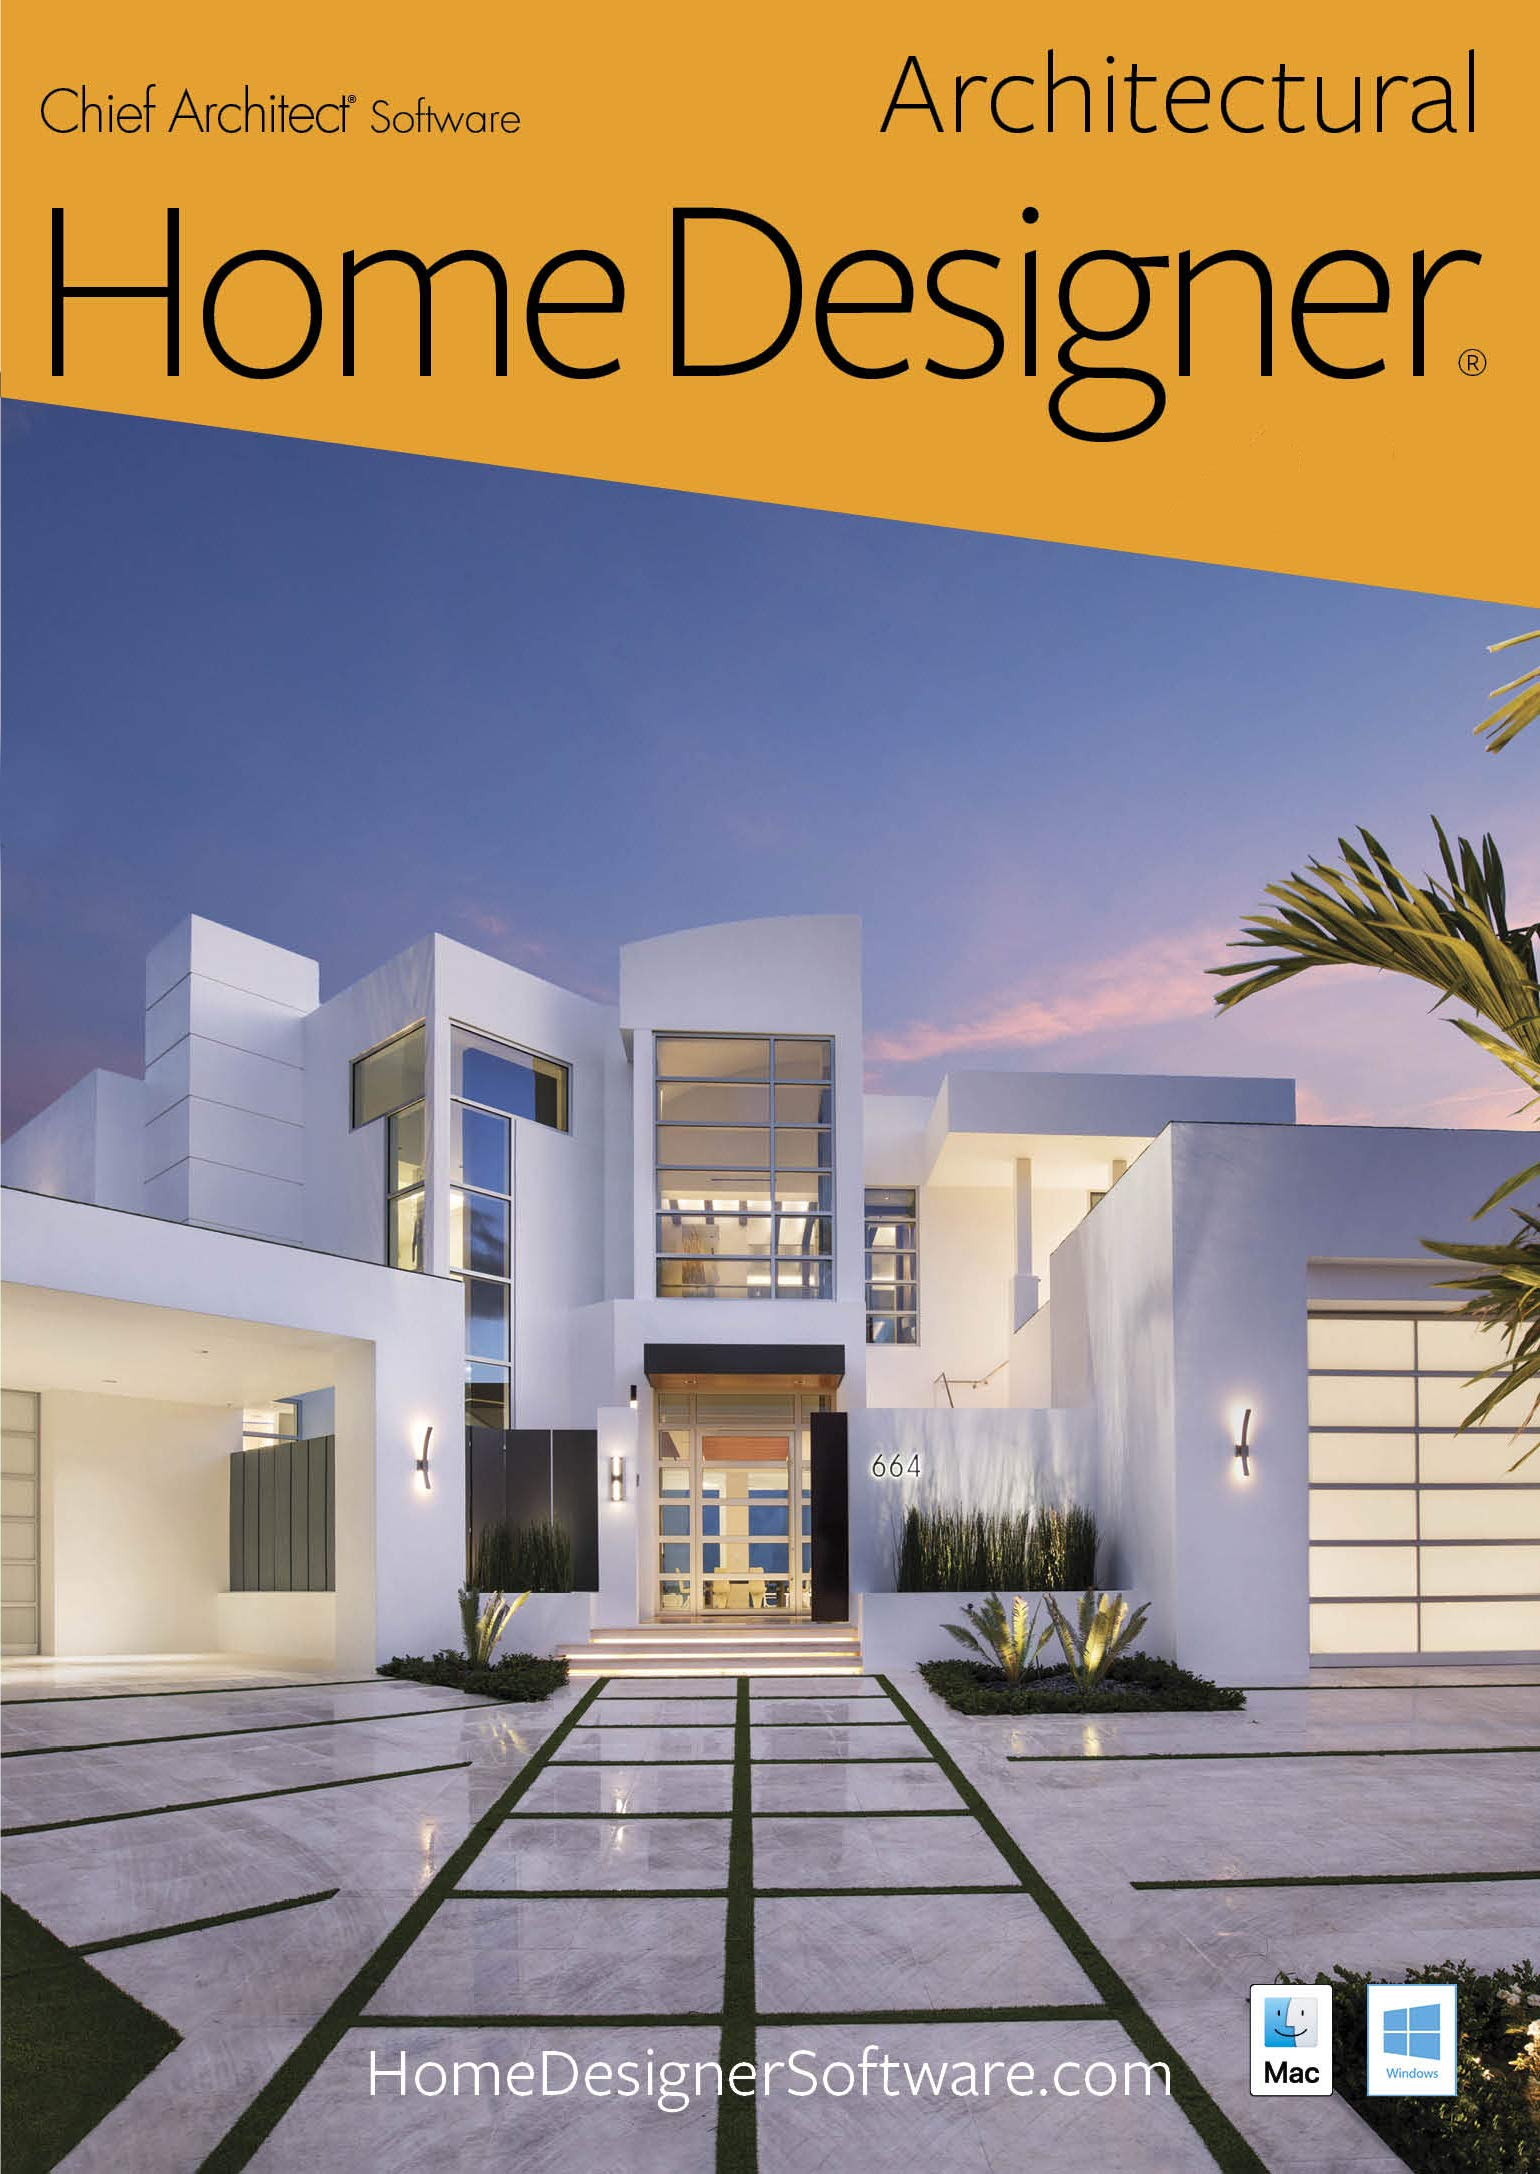 Home Designer Architectural - PC Download [PC Download] by Chief Architect